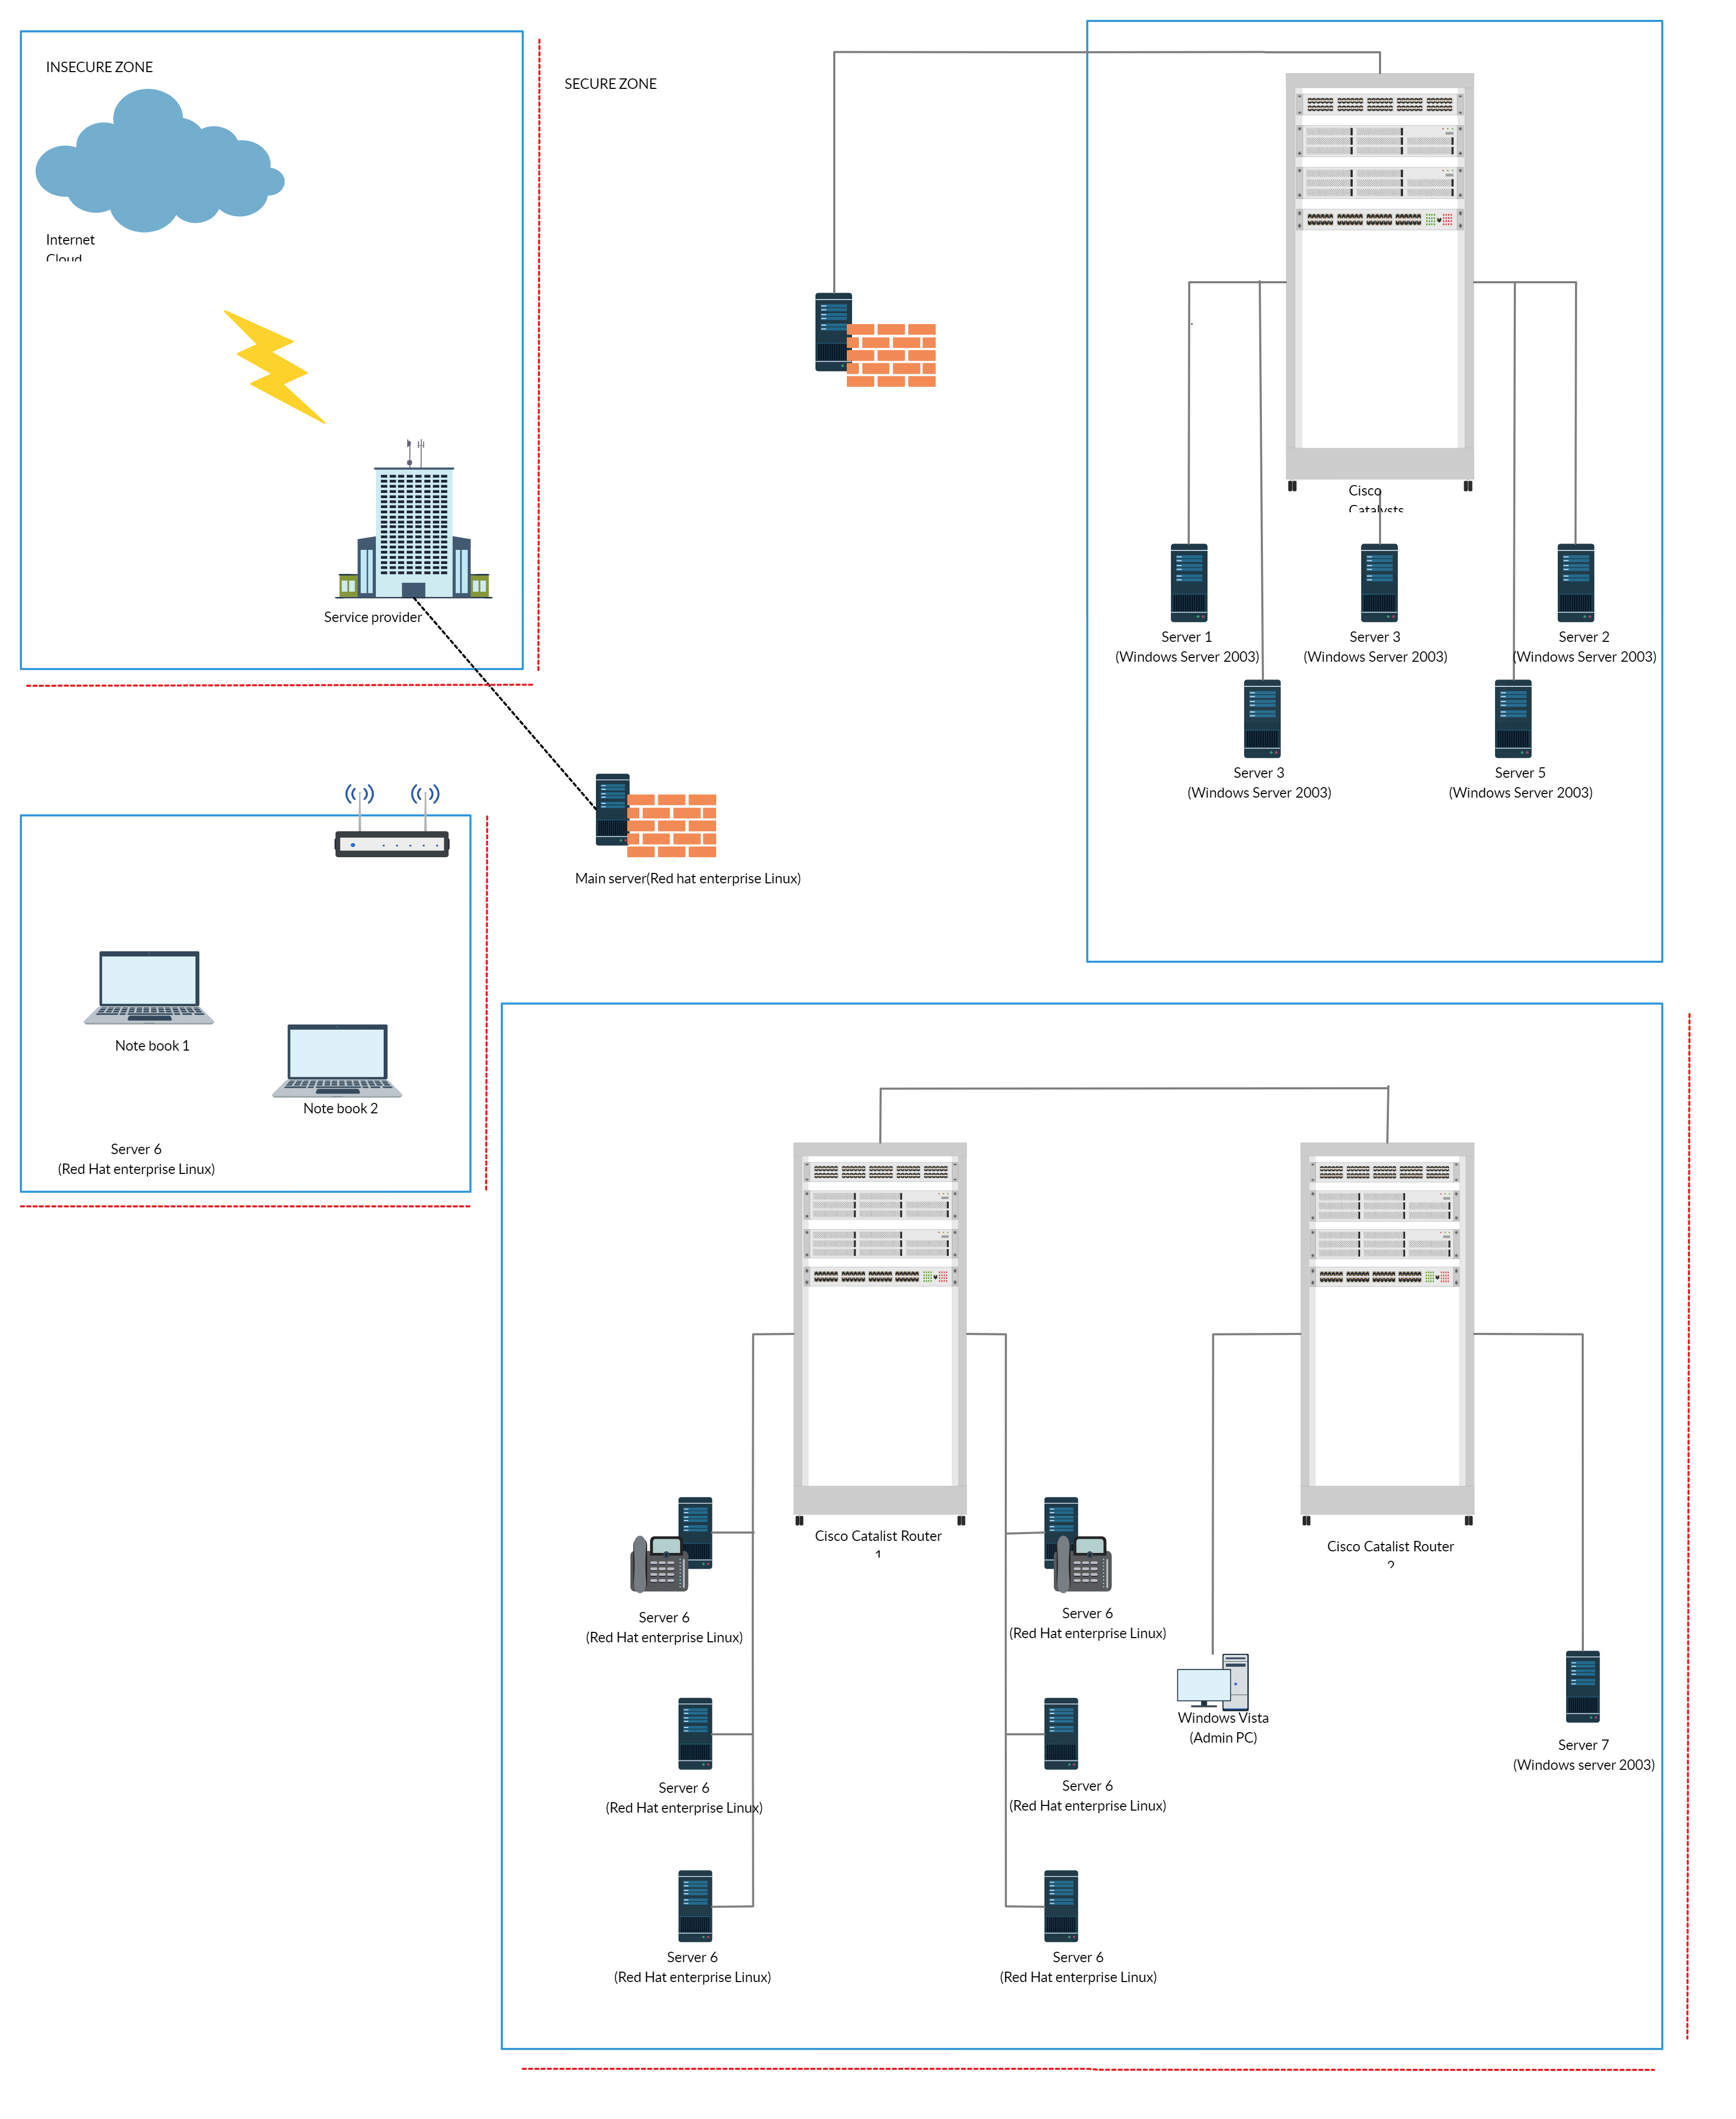 Vlan Network Diagram Diagram Local Area Network Networking